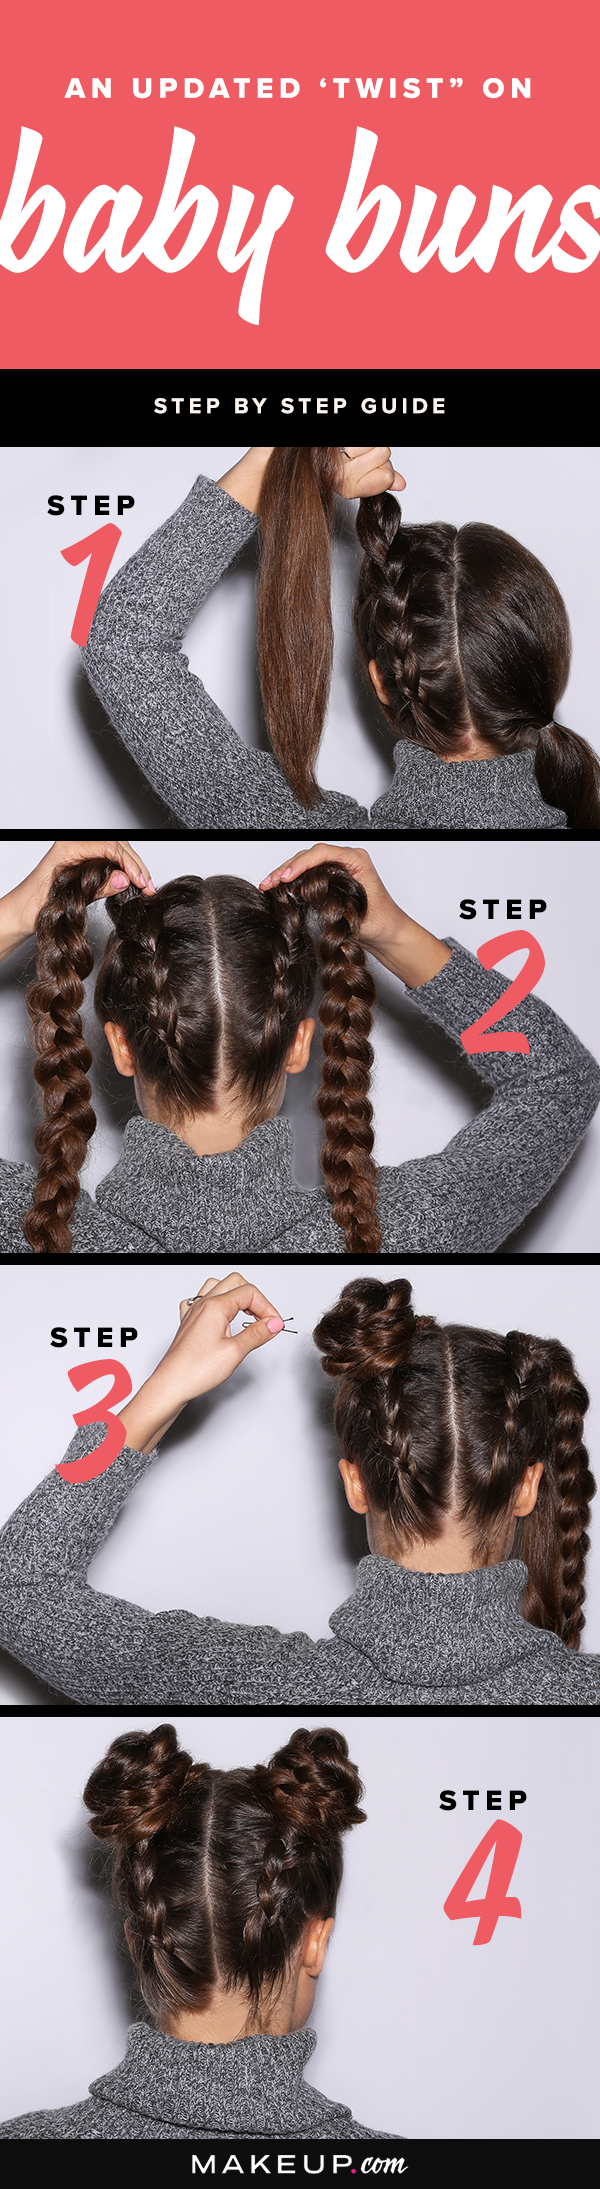 How to create braided baby buns bun hairstyle diy hair and tutorials